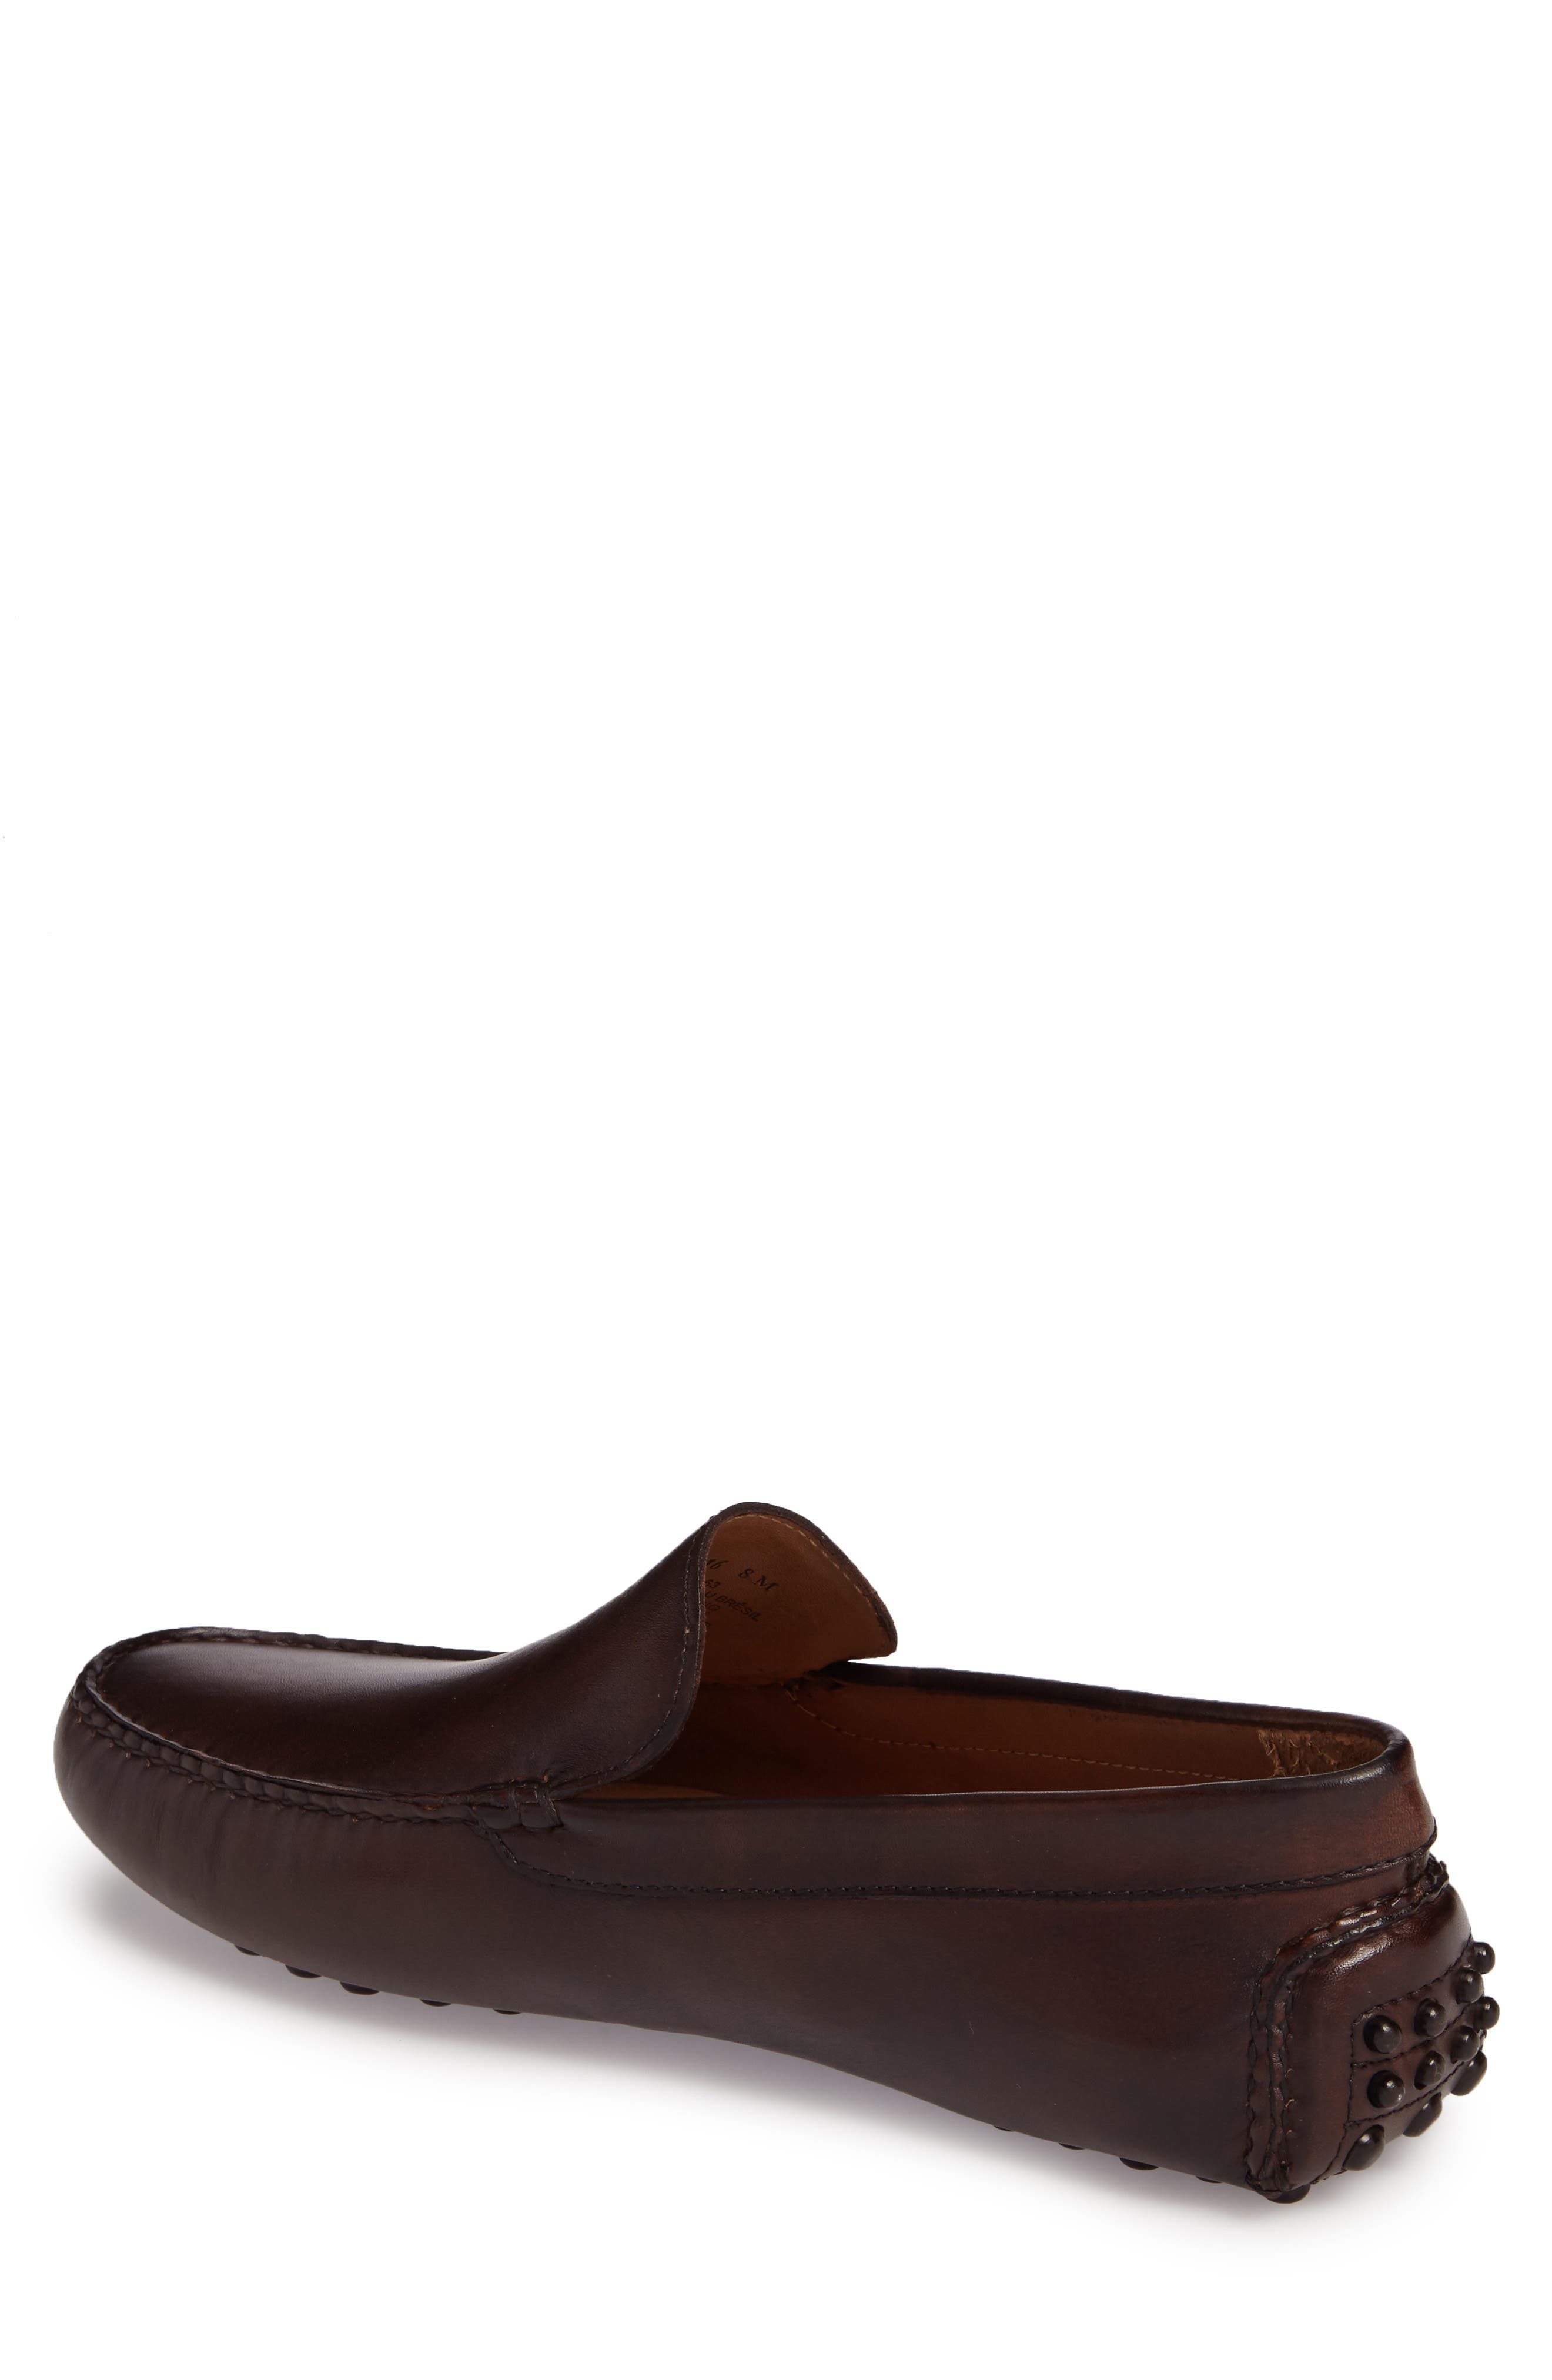 Cane Driving Shoe,                             Alternate thumbnail 2, color,                             Brown Leather